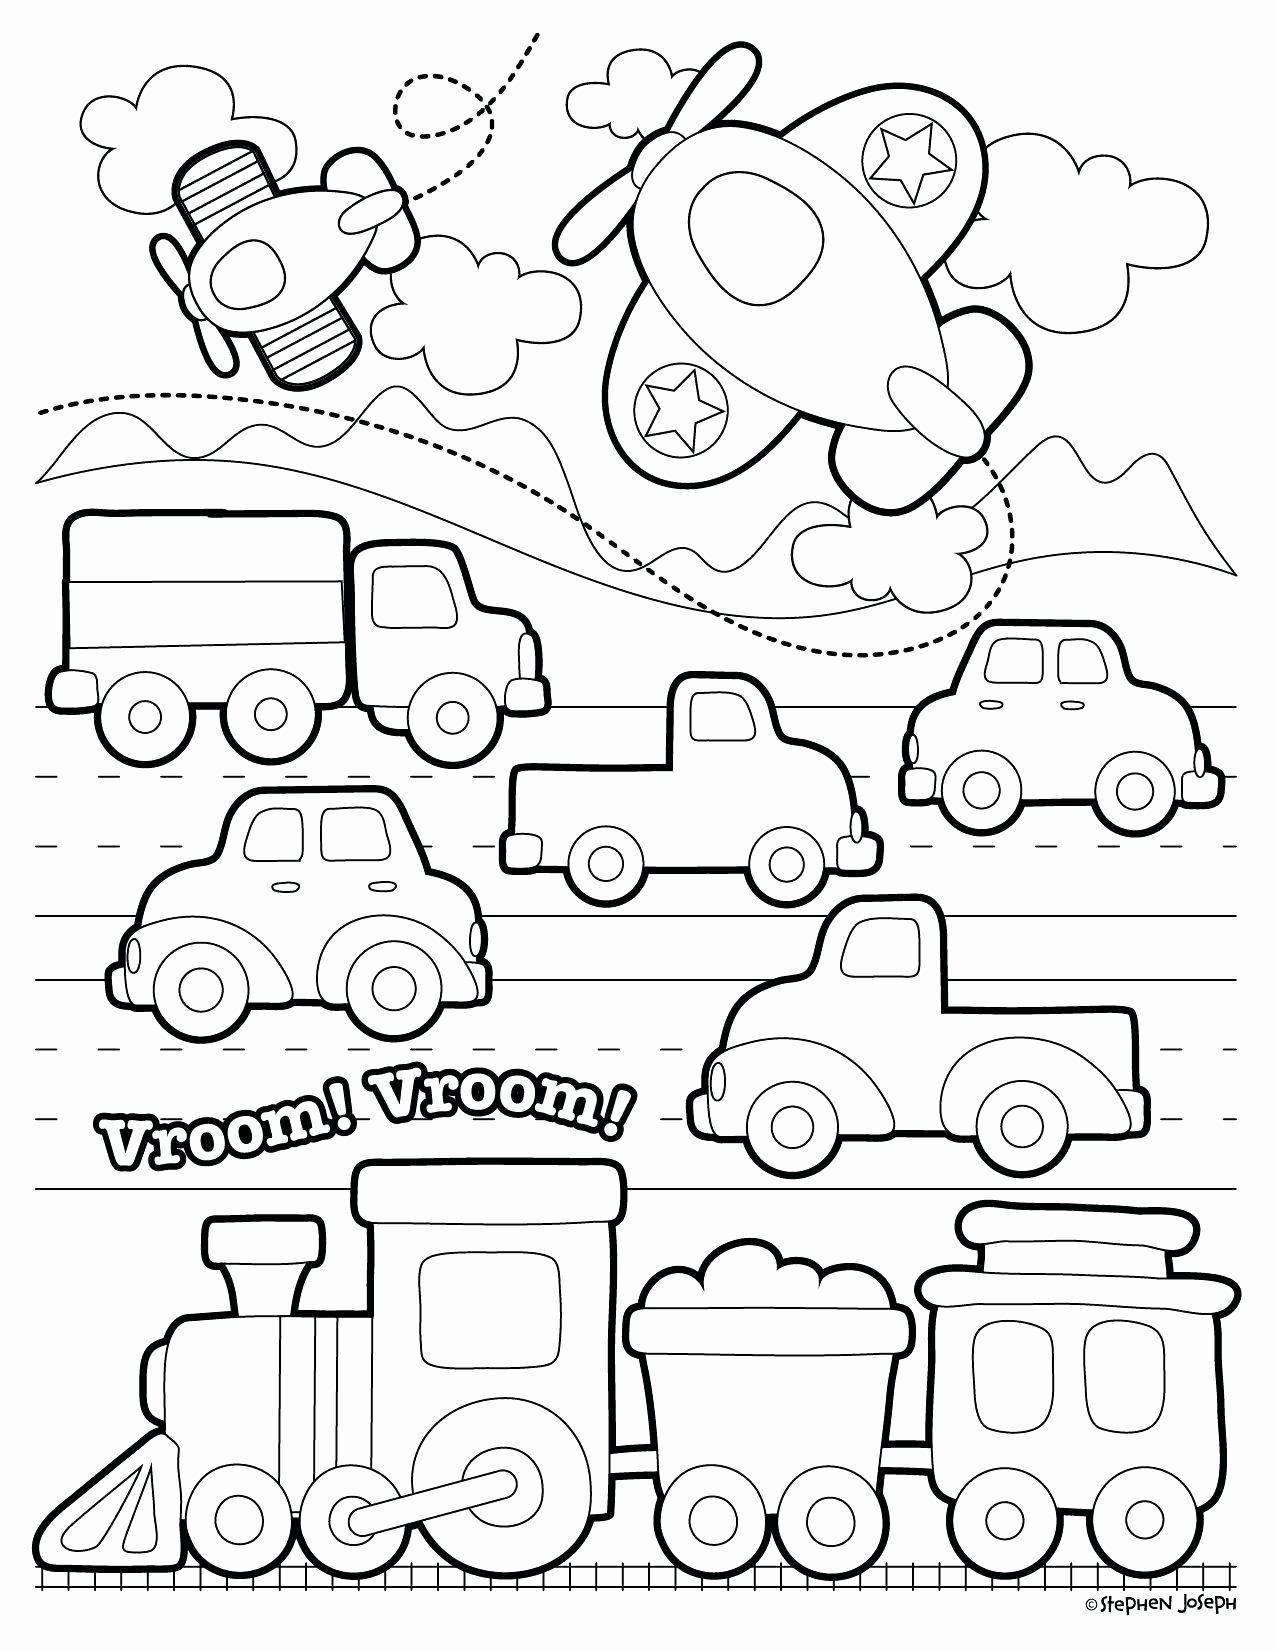 Road Transport Coloring Pages Beautiful Land Transport Coloring Pages Redhat Be Preschool Coloring Pages Train Coloring Pages Thanksgiving Coloring Pages